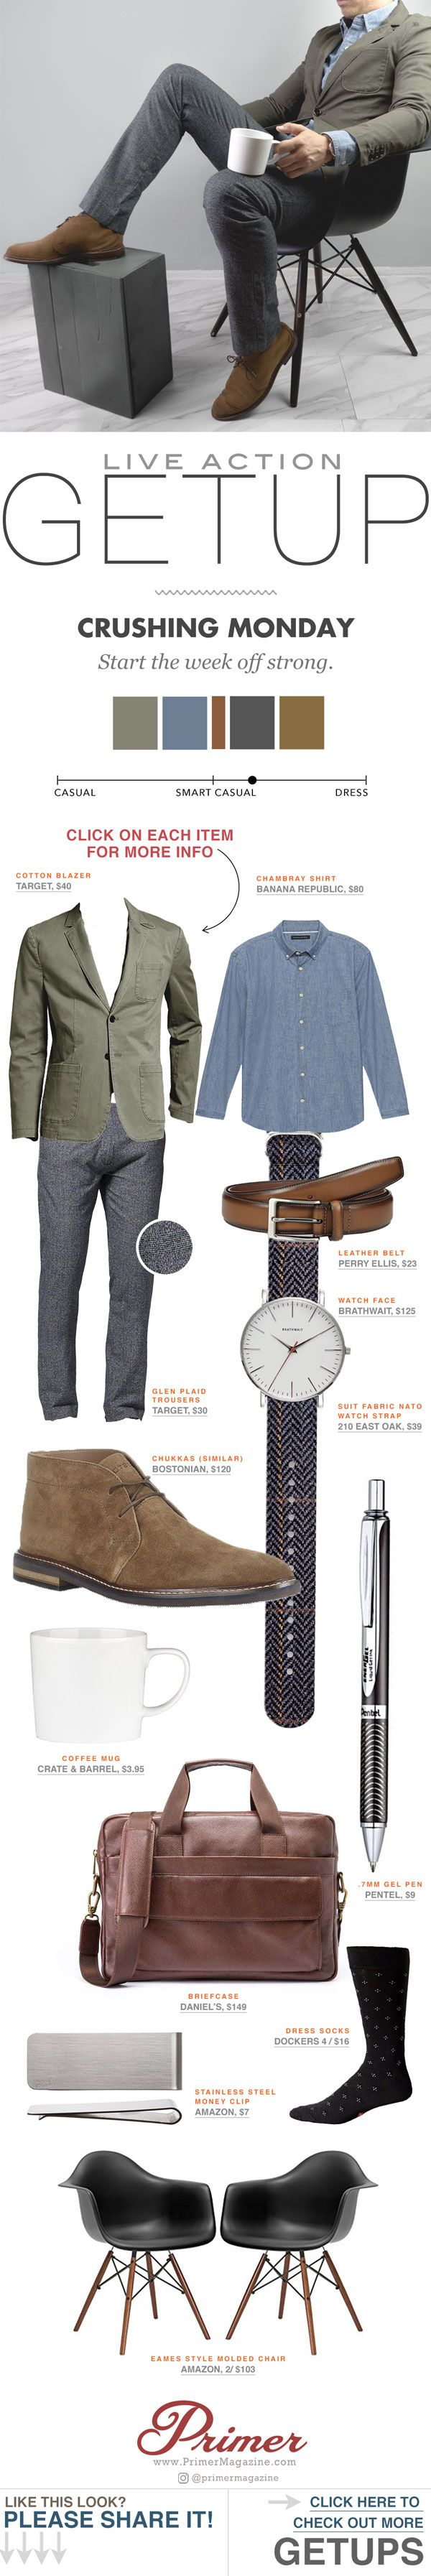 The Getup. Men's outfit ideas business casual smart casual   blazer chukka boots men fashion